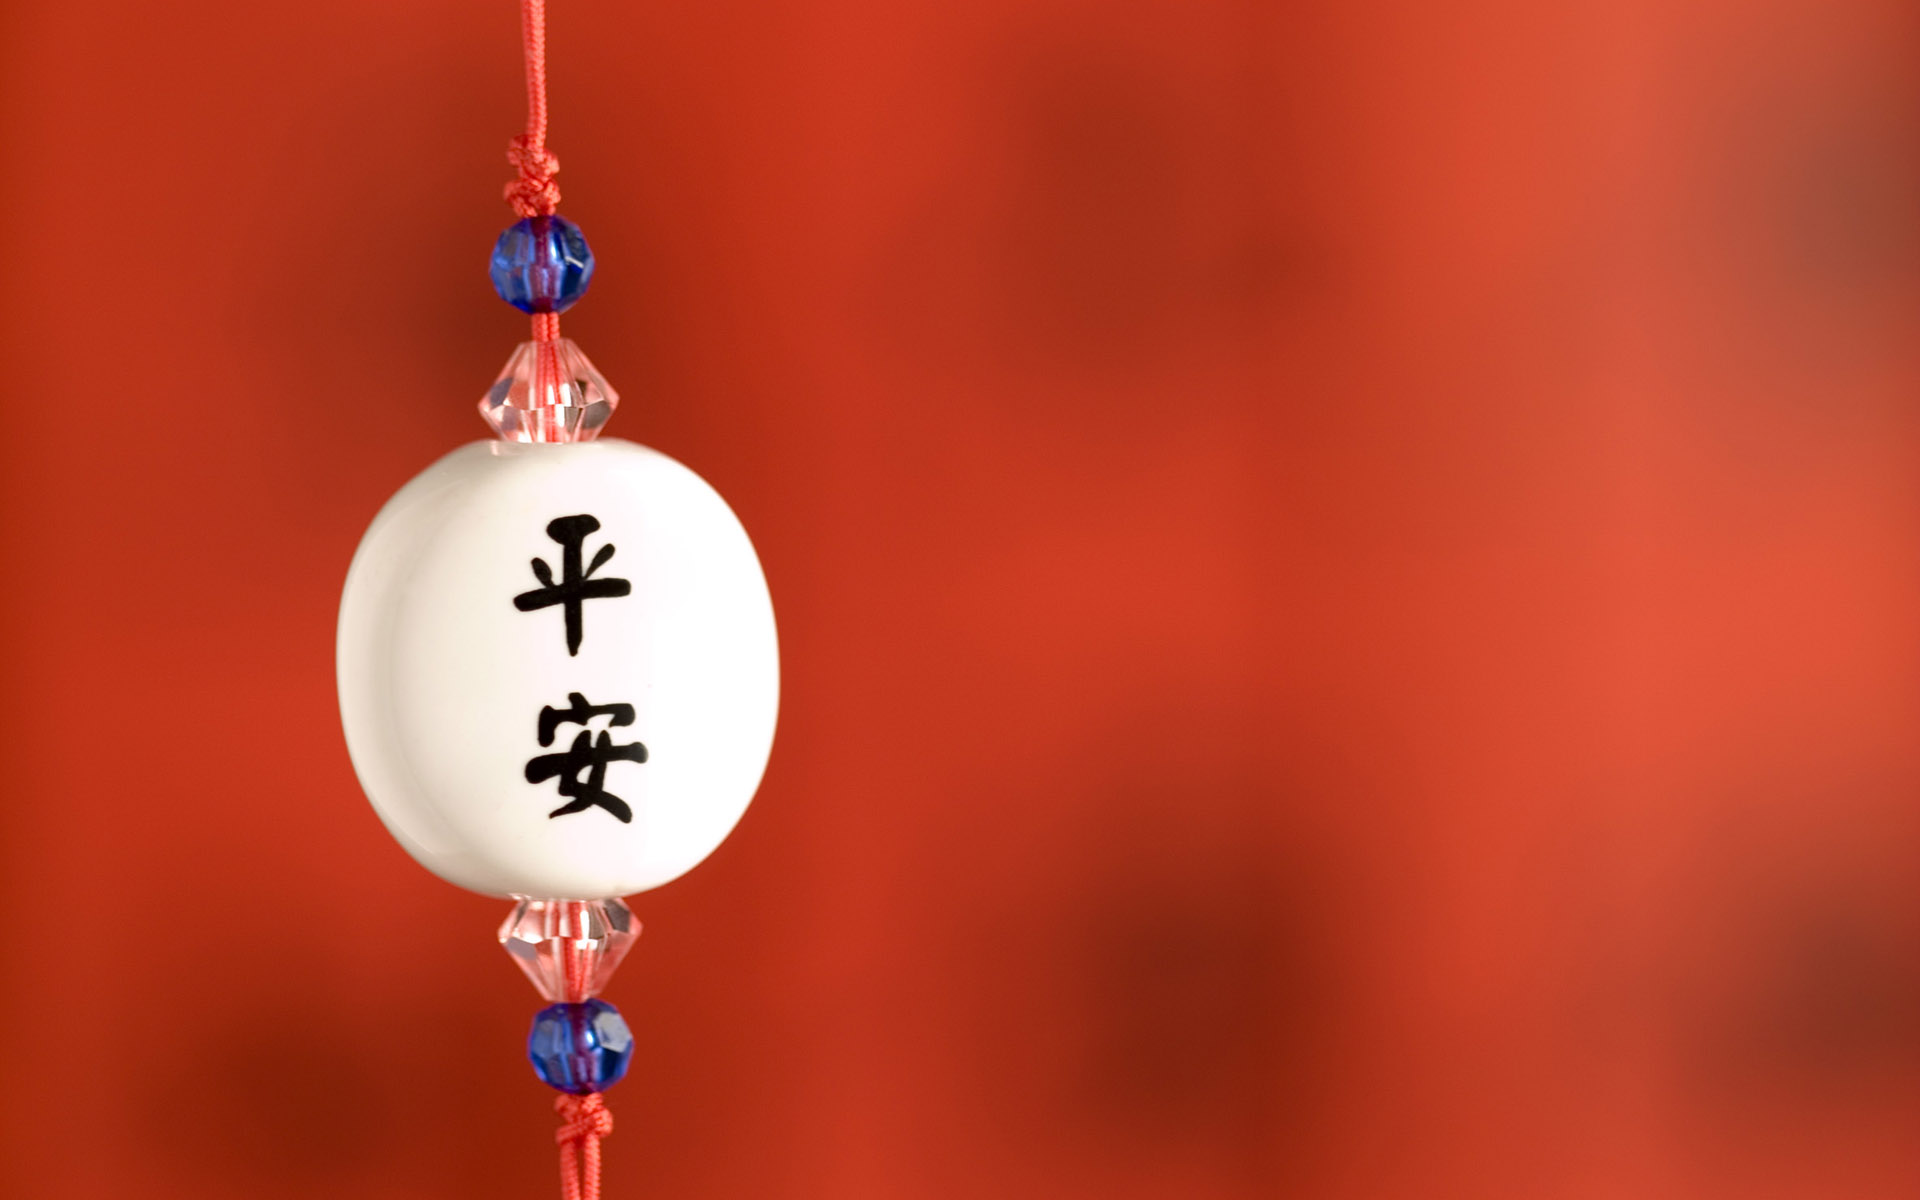 Chinese New Year 2014 Backgrounds   Wallpaper High Definition High 1920x1200